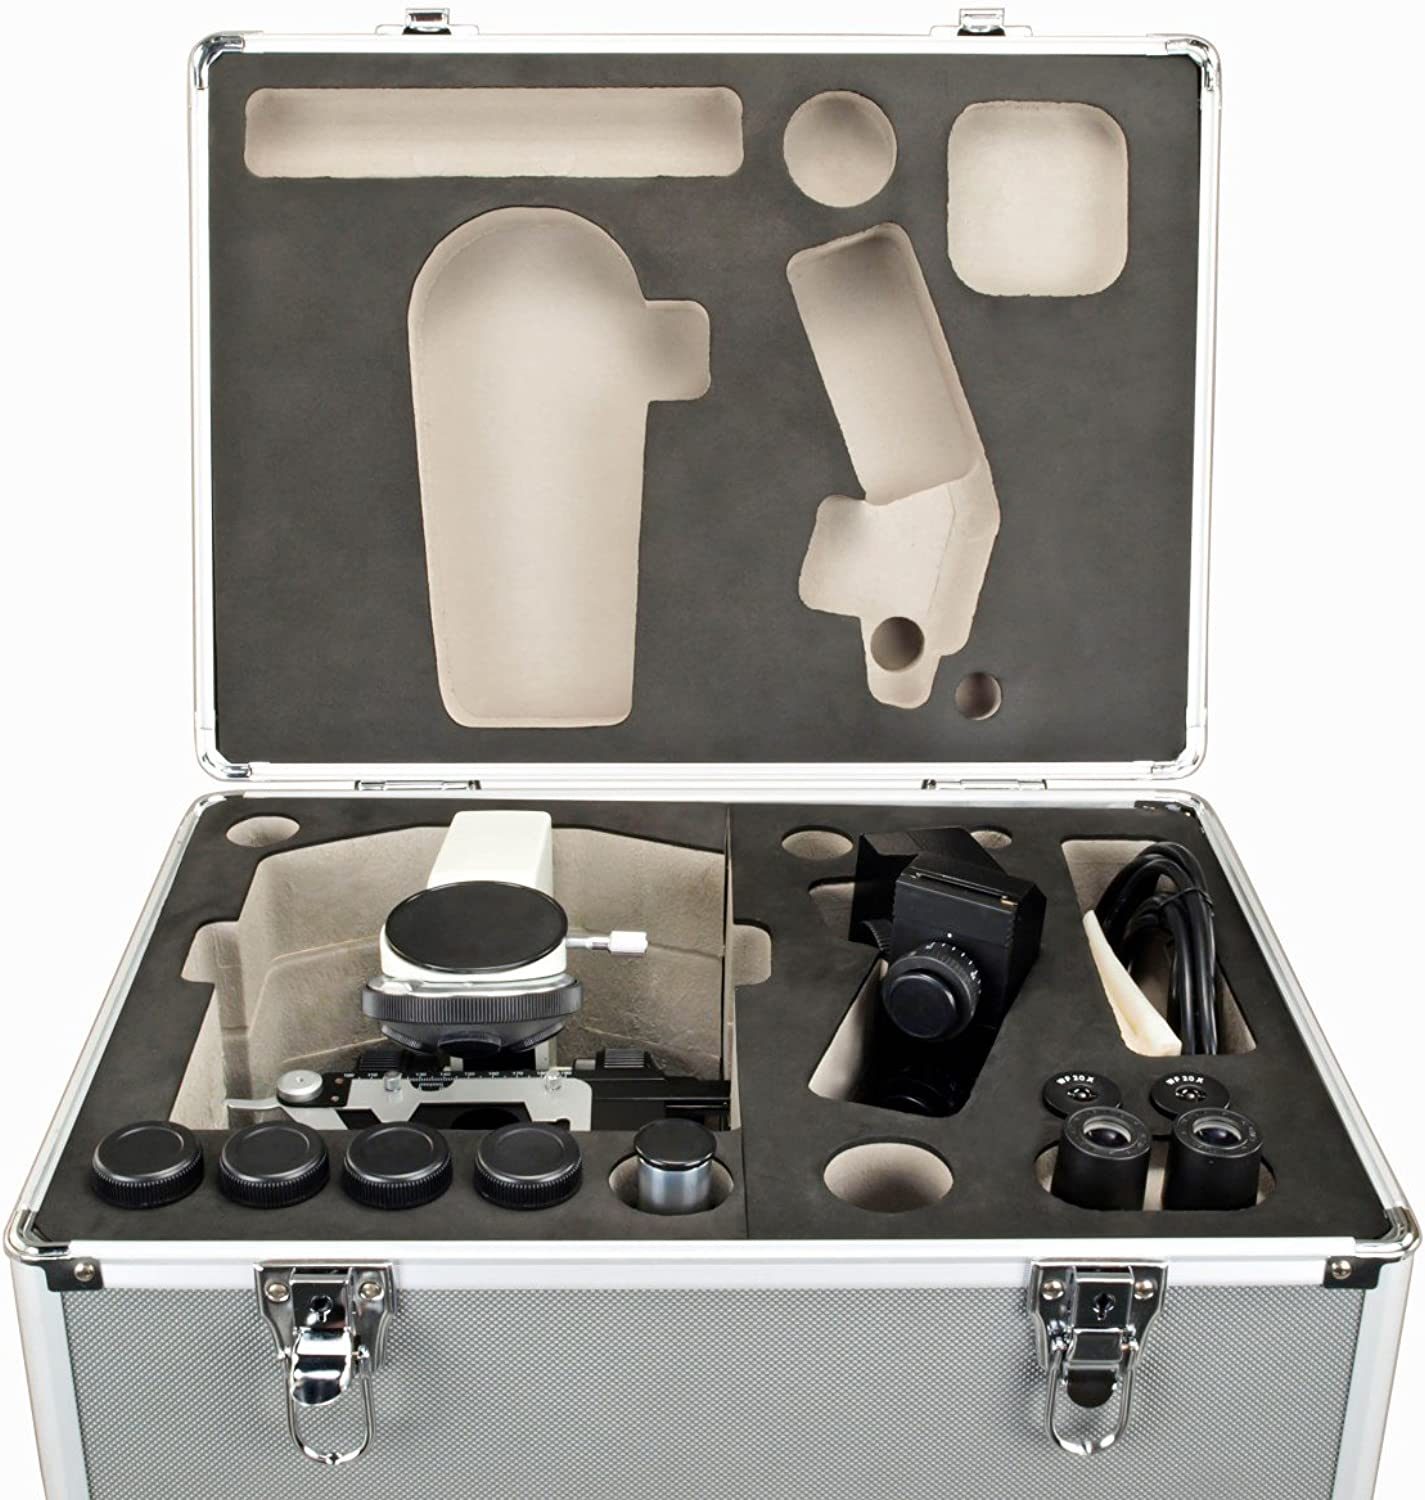 40X2000X Trinocular Compound Replaceable LED Microscope with Aluminum Carrying Case